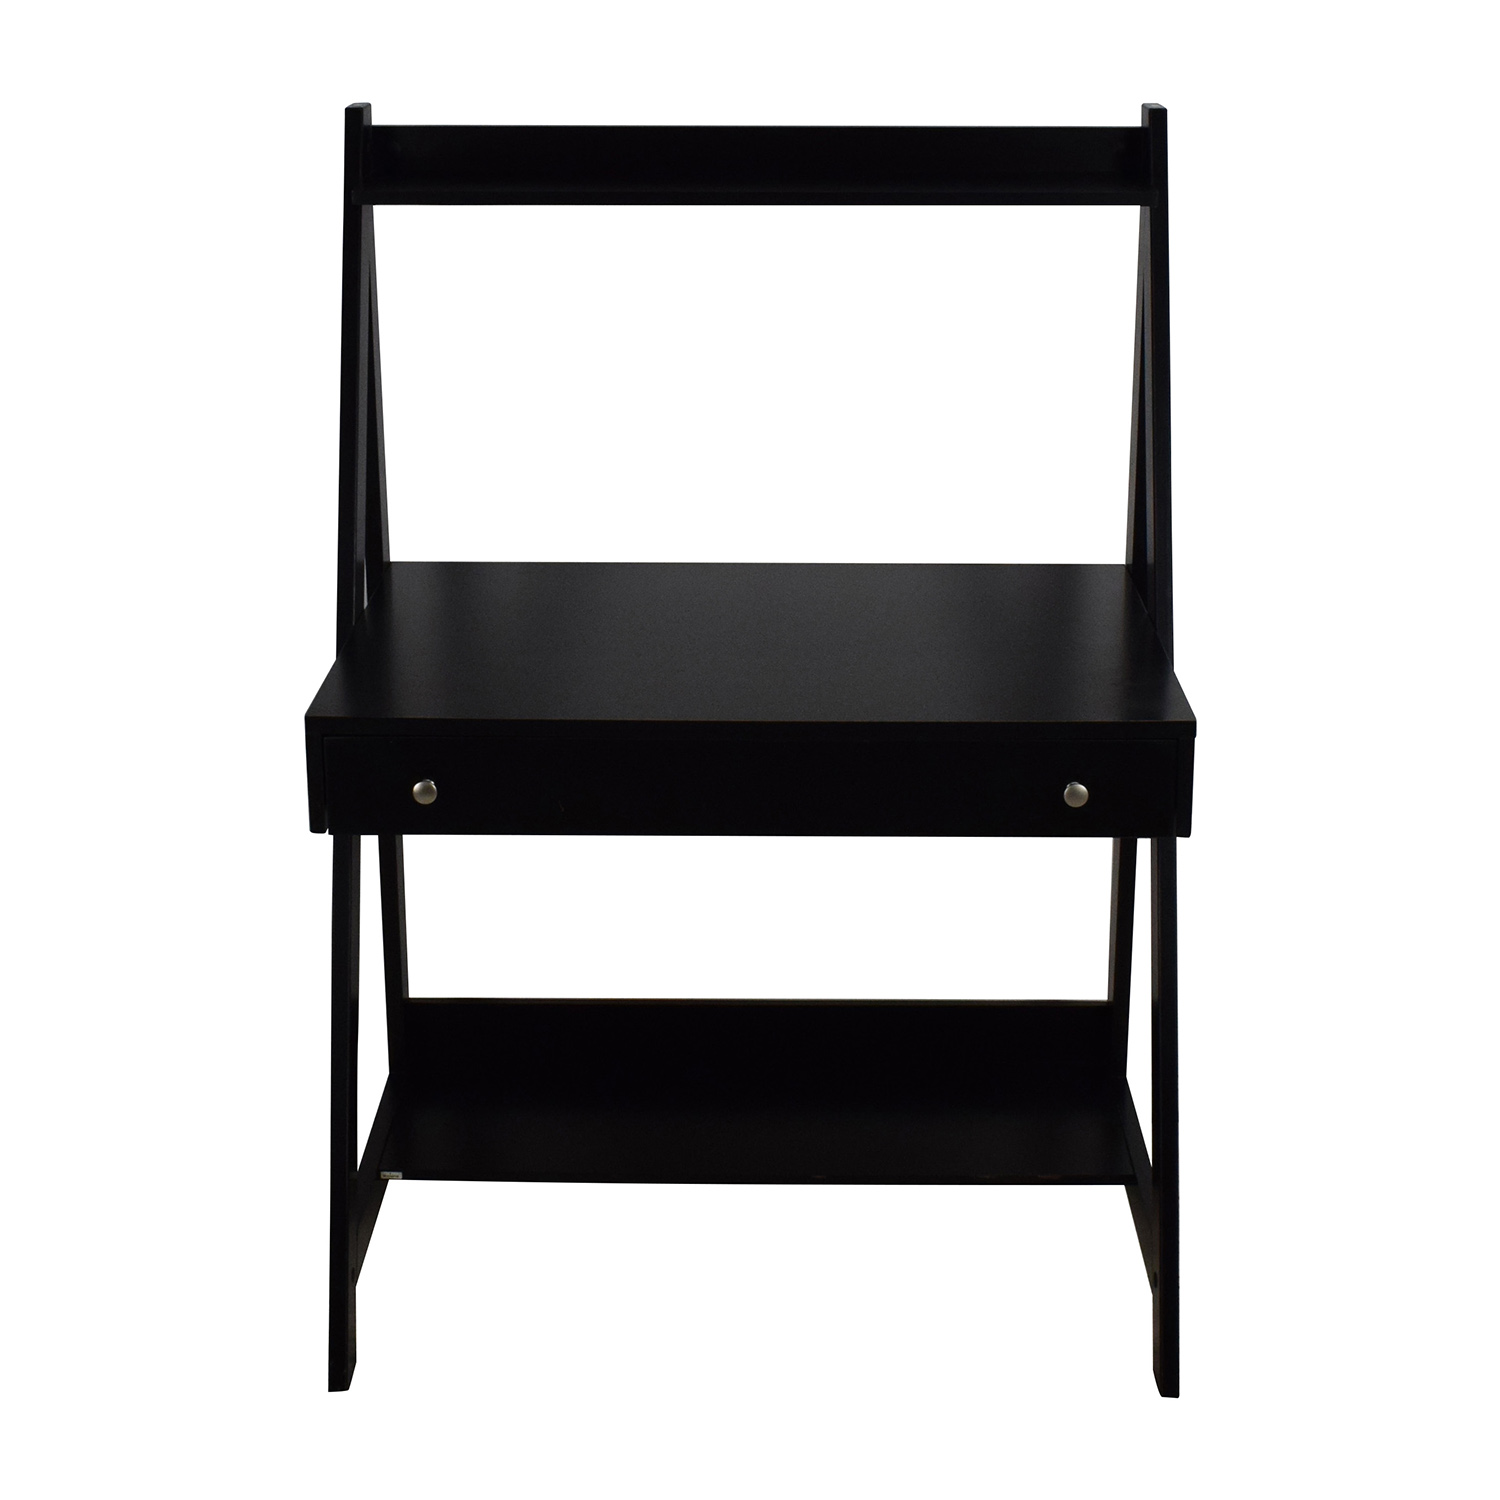 Bush Furniture Black Ladder Office Desk / Tables